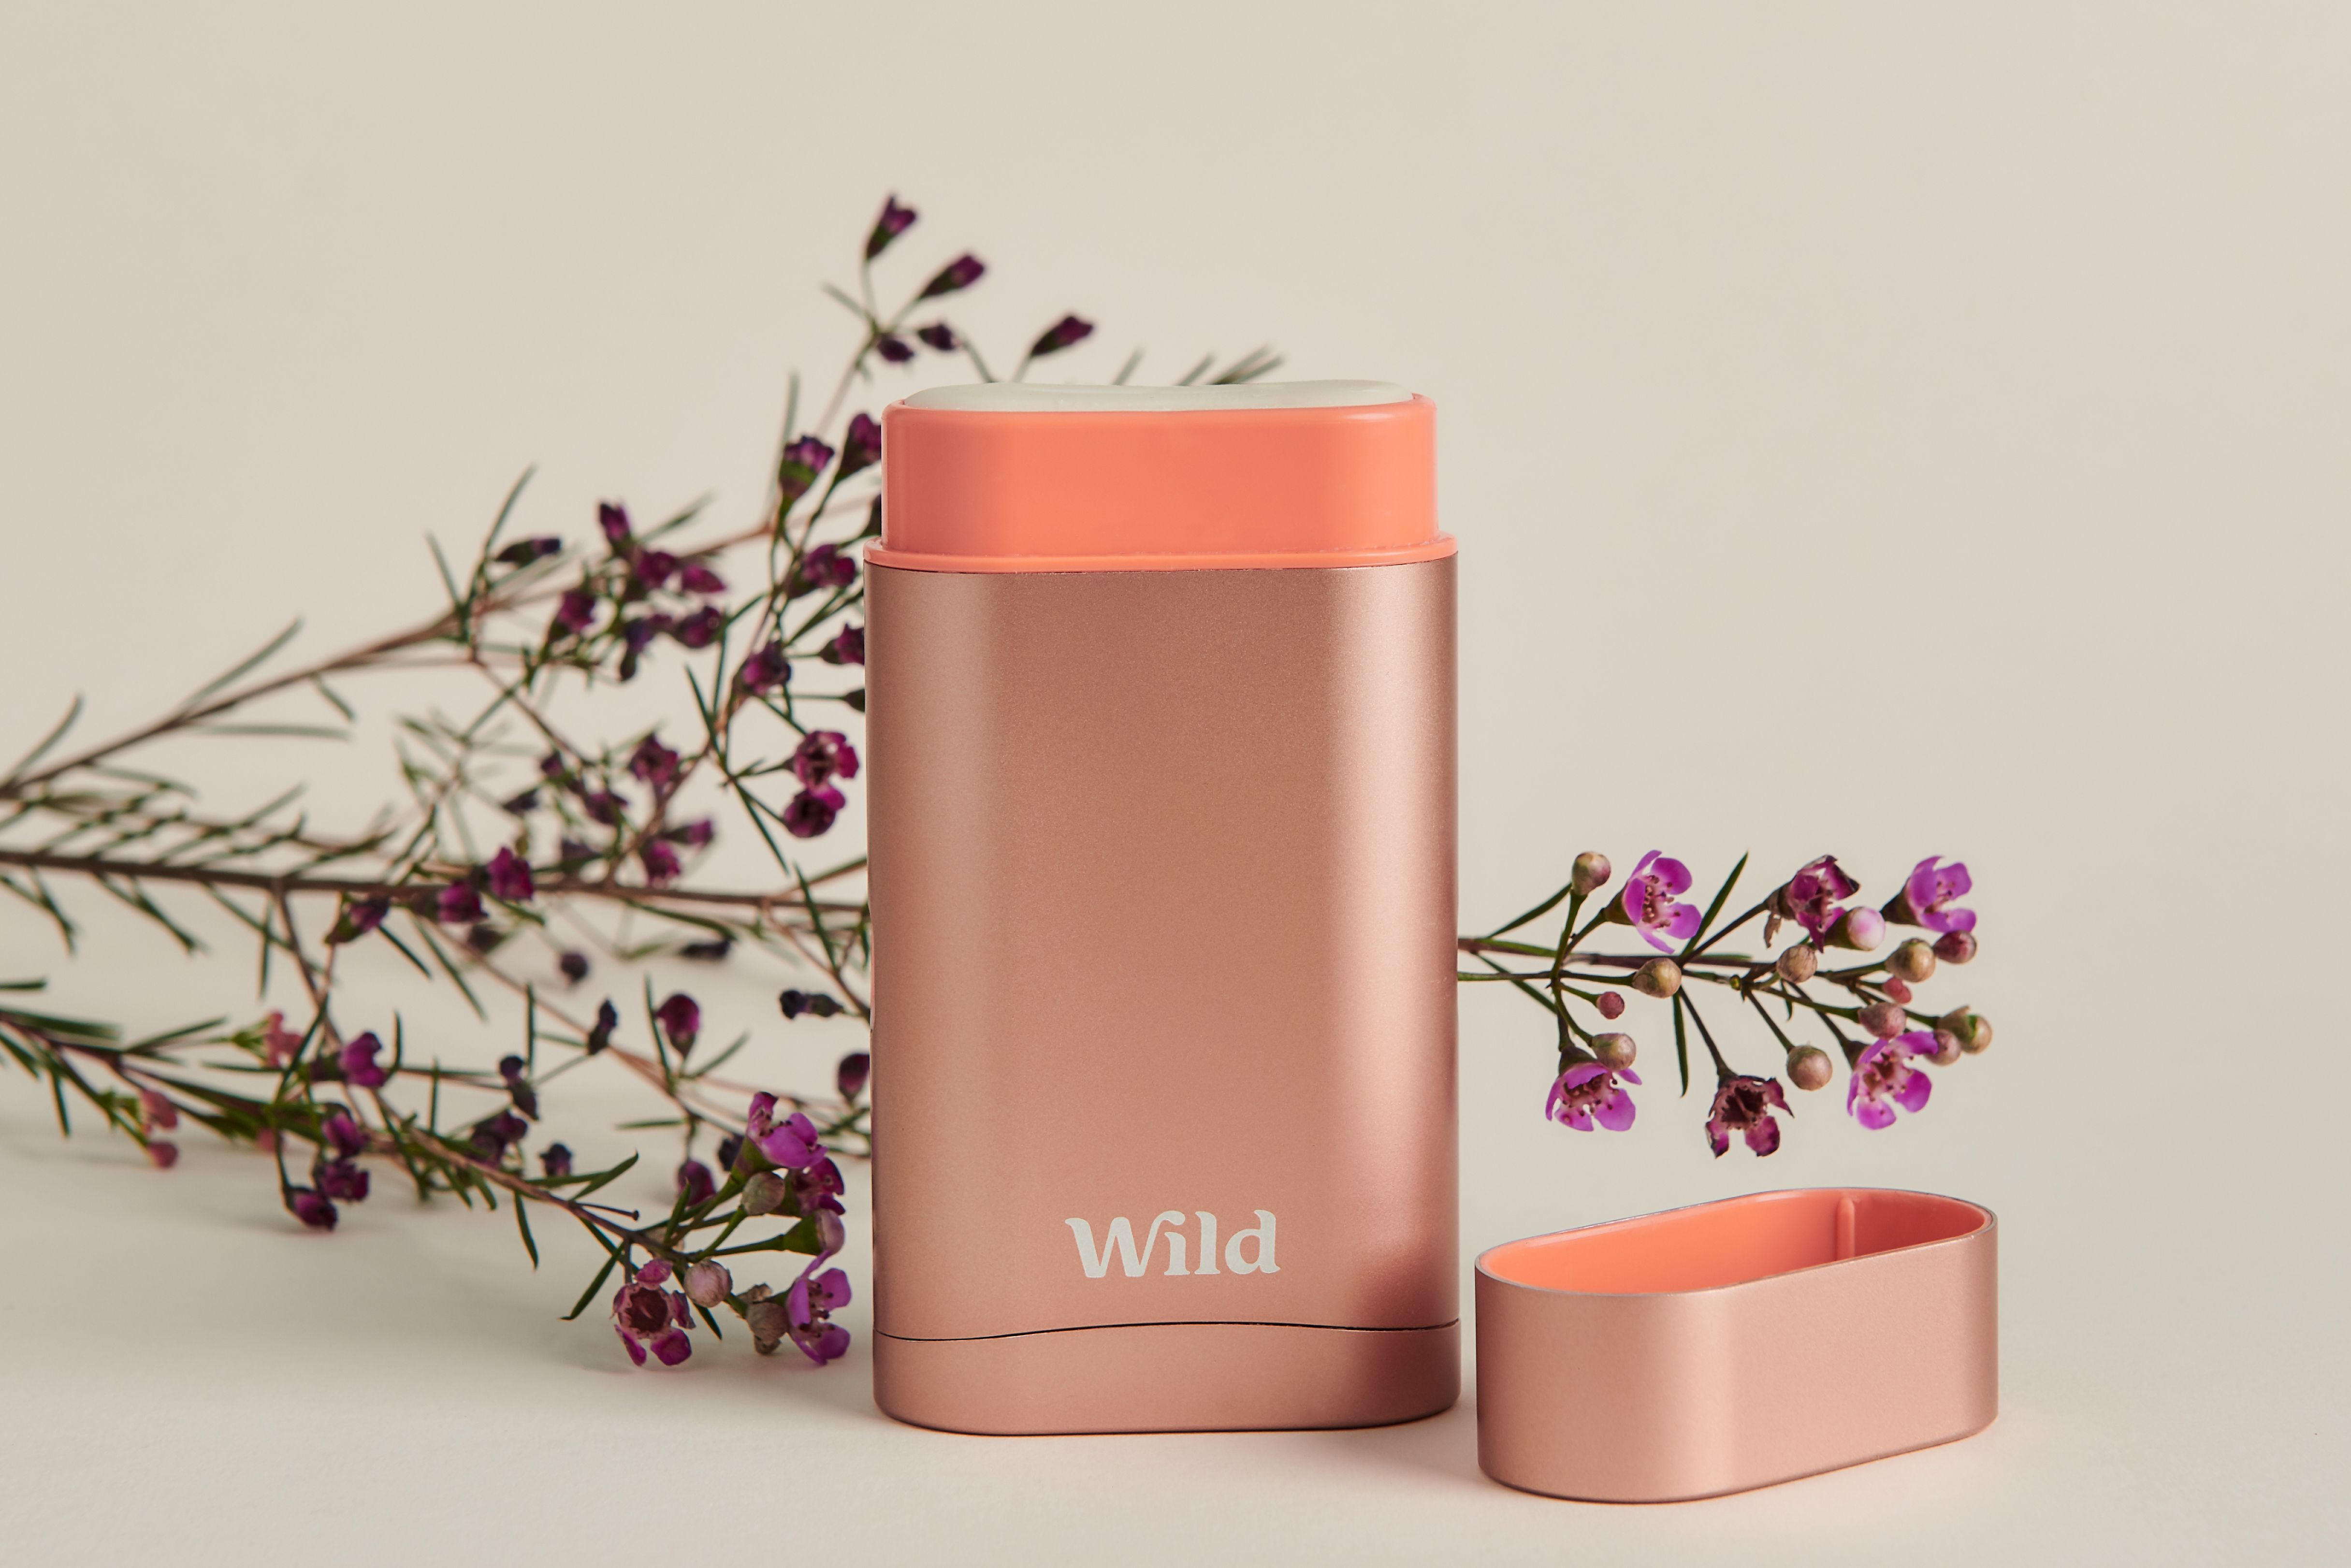 The new fully sustainable Wild natural deodorant is